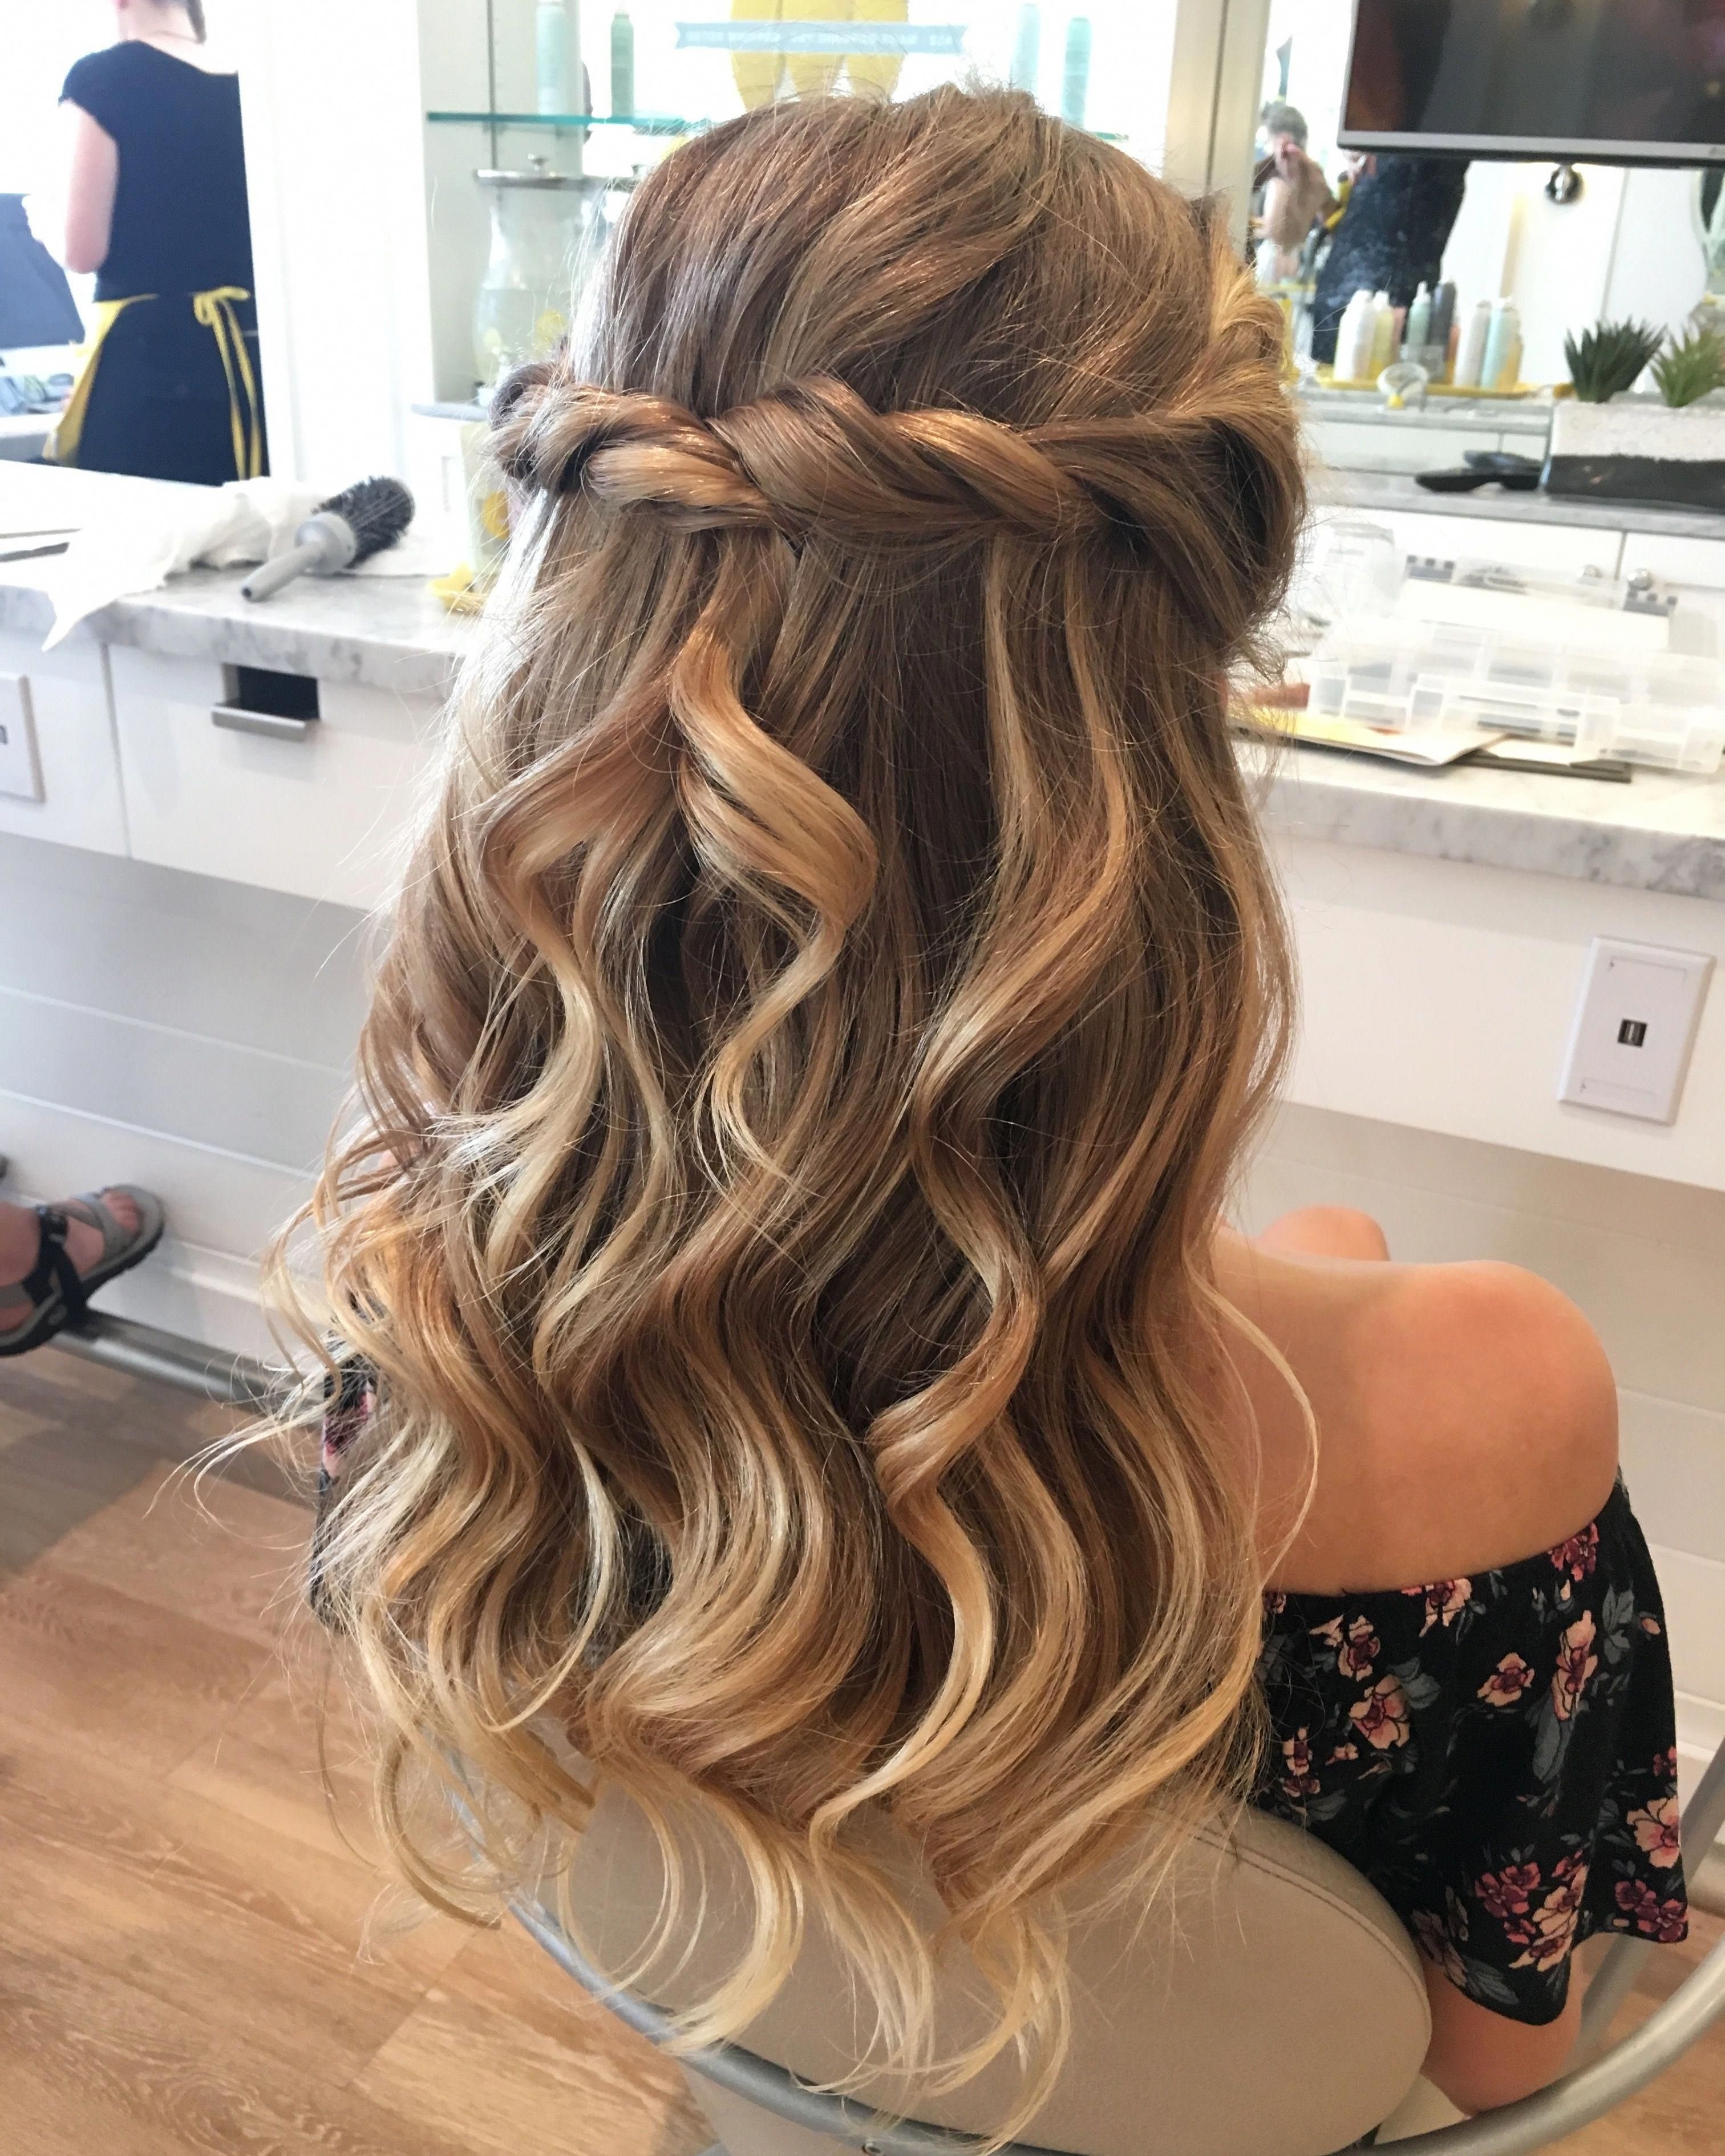 Fabulous All Down Prom Hairstyles Alldownpromhairstyles Bridesmaid Hair Long Bridesmaid Hair Half Up Bridesmaid Hair Medium Length Half Up